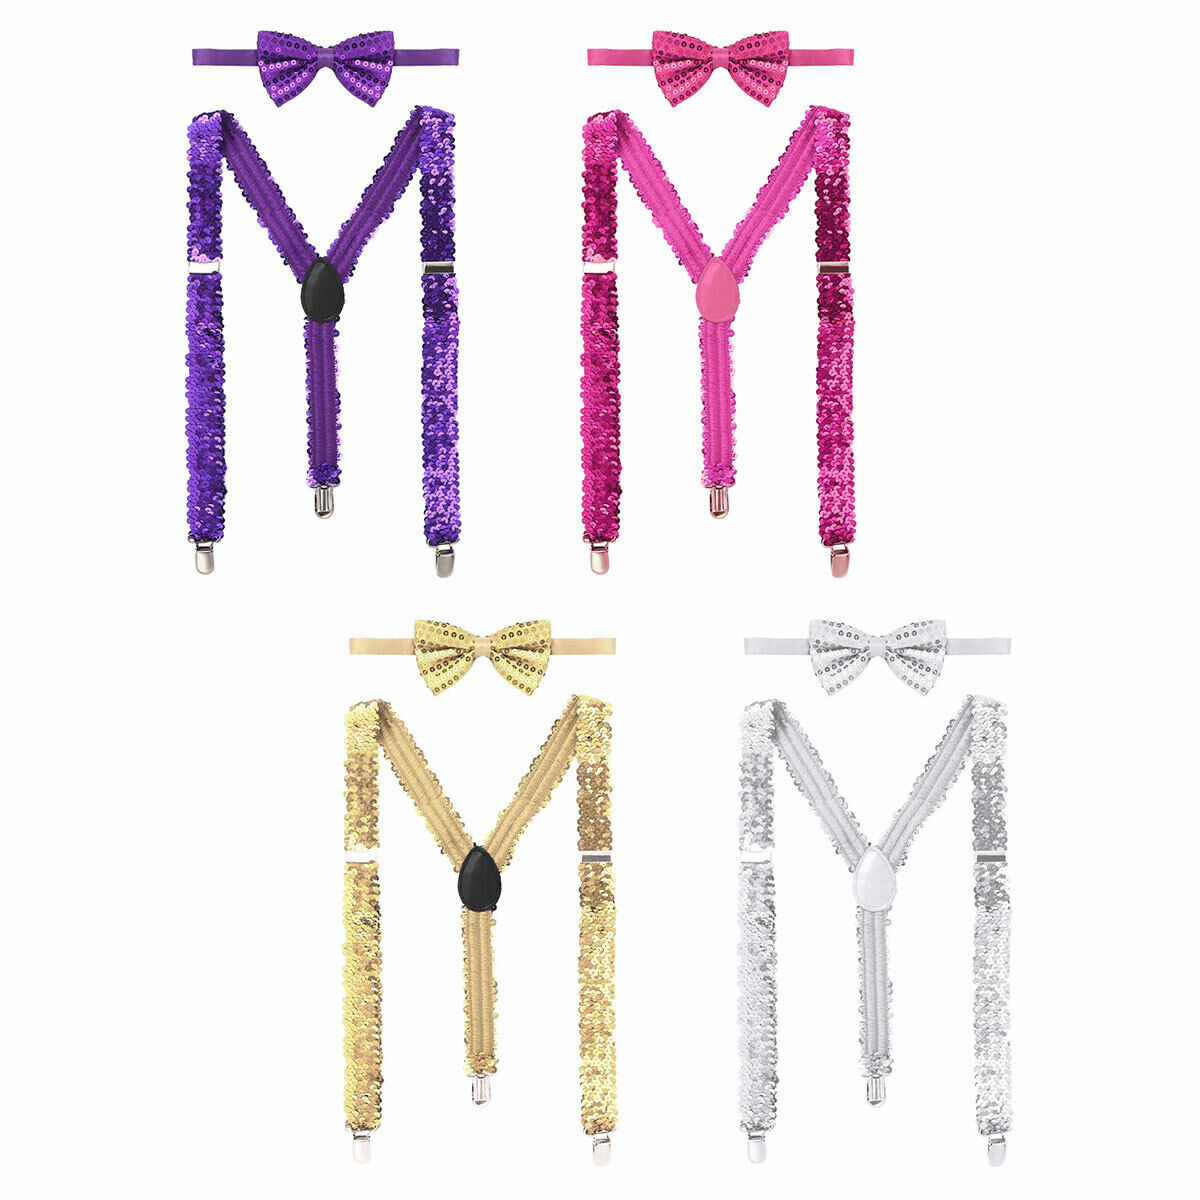 Women Sparkling Sequins Stretchy Adjustable Y Shaped Braces with Bow Tie Outfit